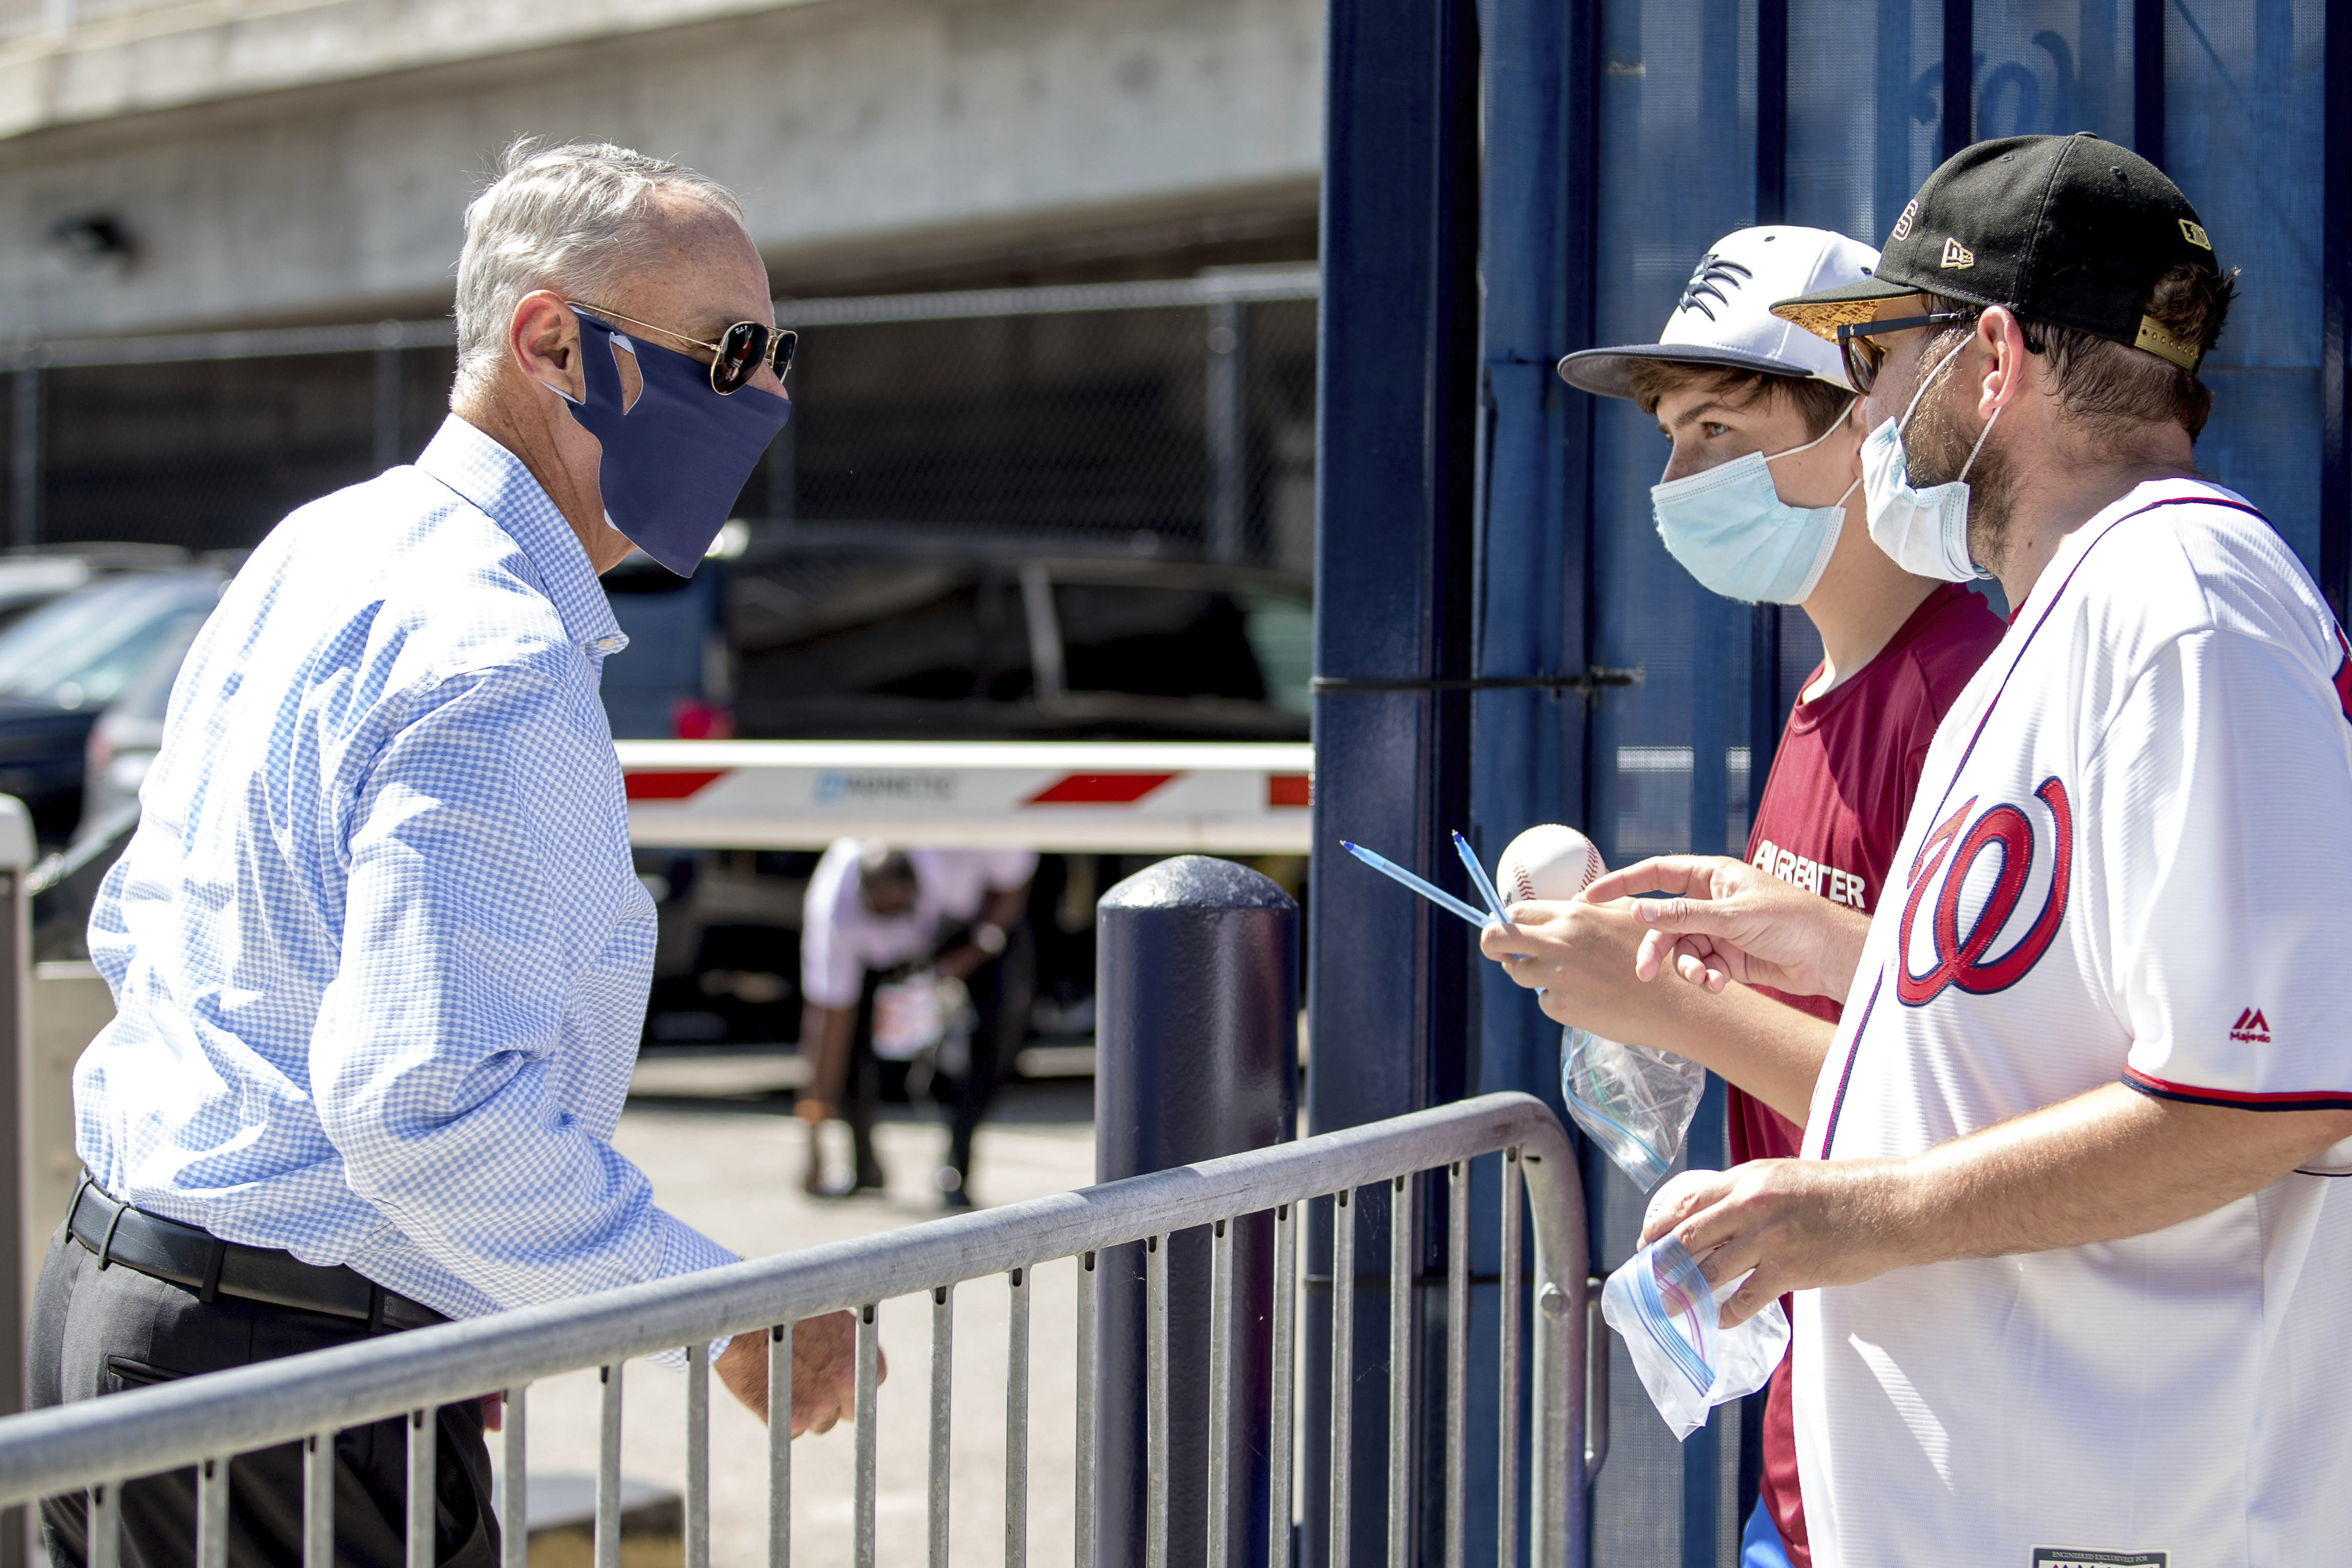 MLB Commissioner Rob Manfred, left, speaks with fans as he arrives at Nationals Park for the New York Yankees and the Washington Nationals opening day baseball game, Thursday, July 23, 2020, in Washington. (AP Photo/Andrew Harnik)